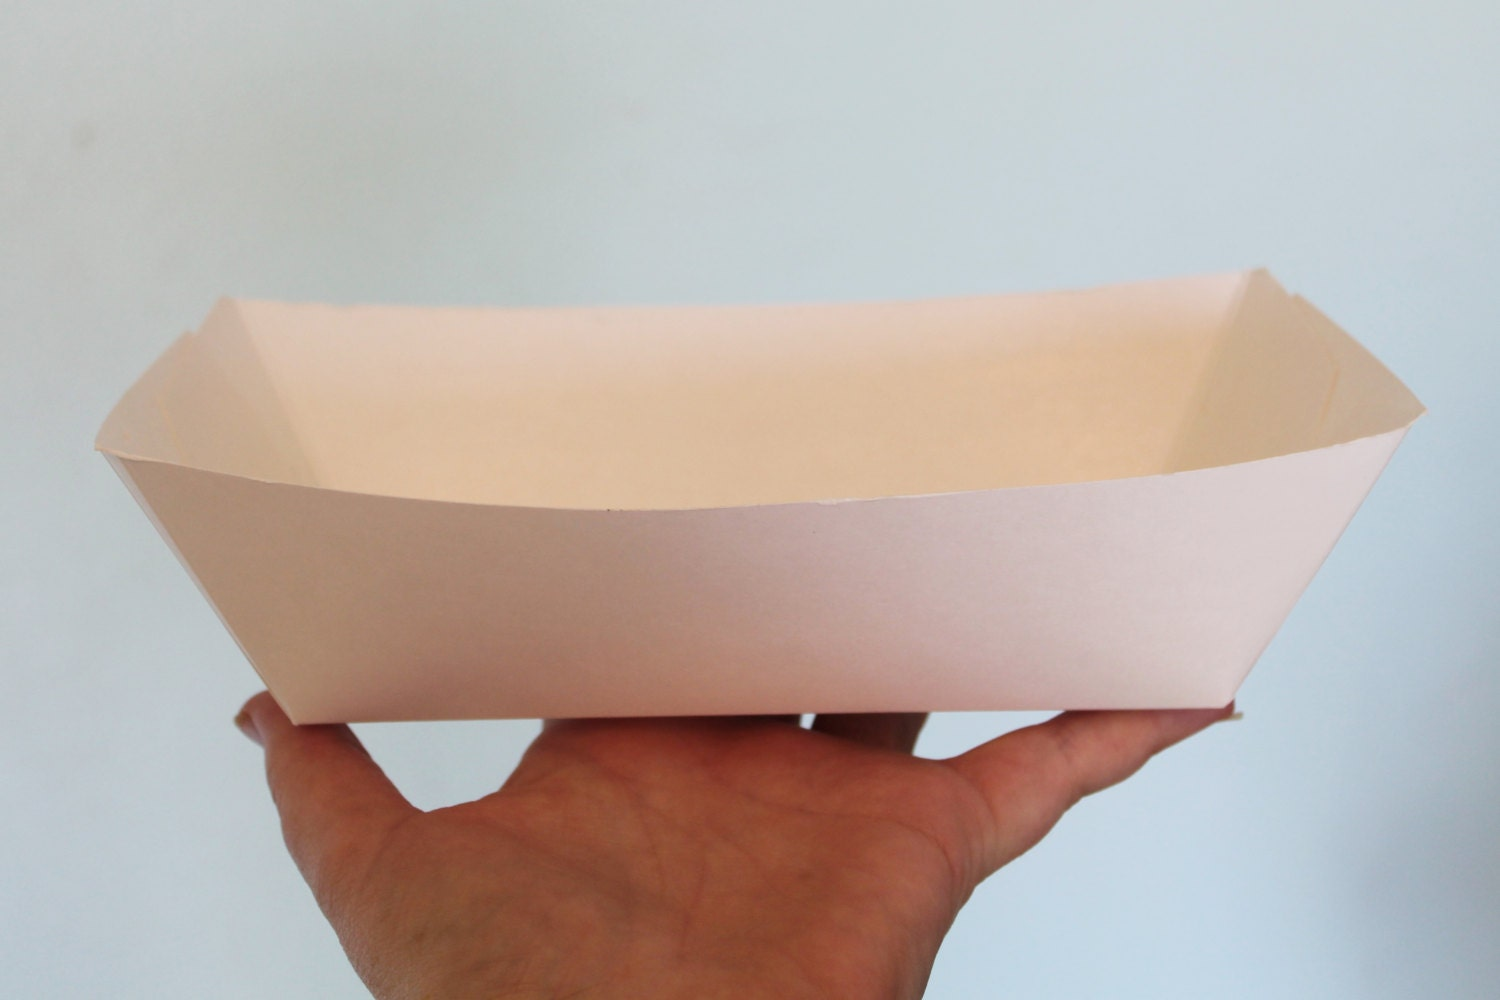 Paper Food Trays 25 Extra Large 5# lbs White Paper Food Trays Snack Box Concession supplies Paper Party Plates Paper wedding kraft tray & Paper Food Trays 25 Extra Large 5# lbs White Paper Food Trays ...